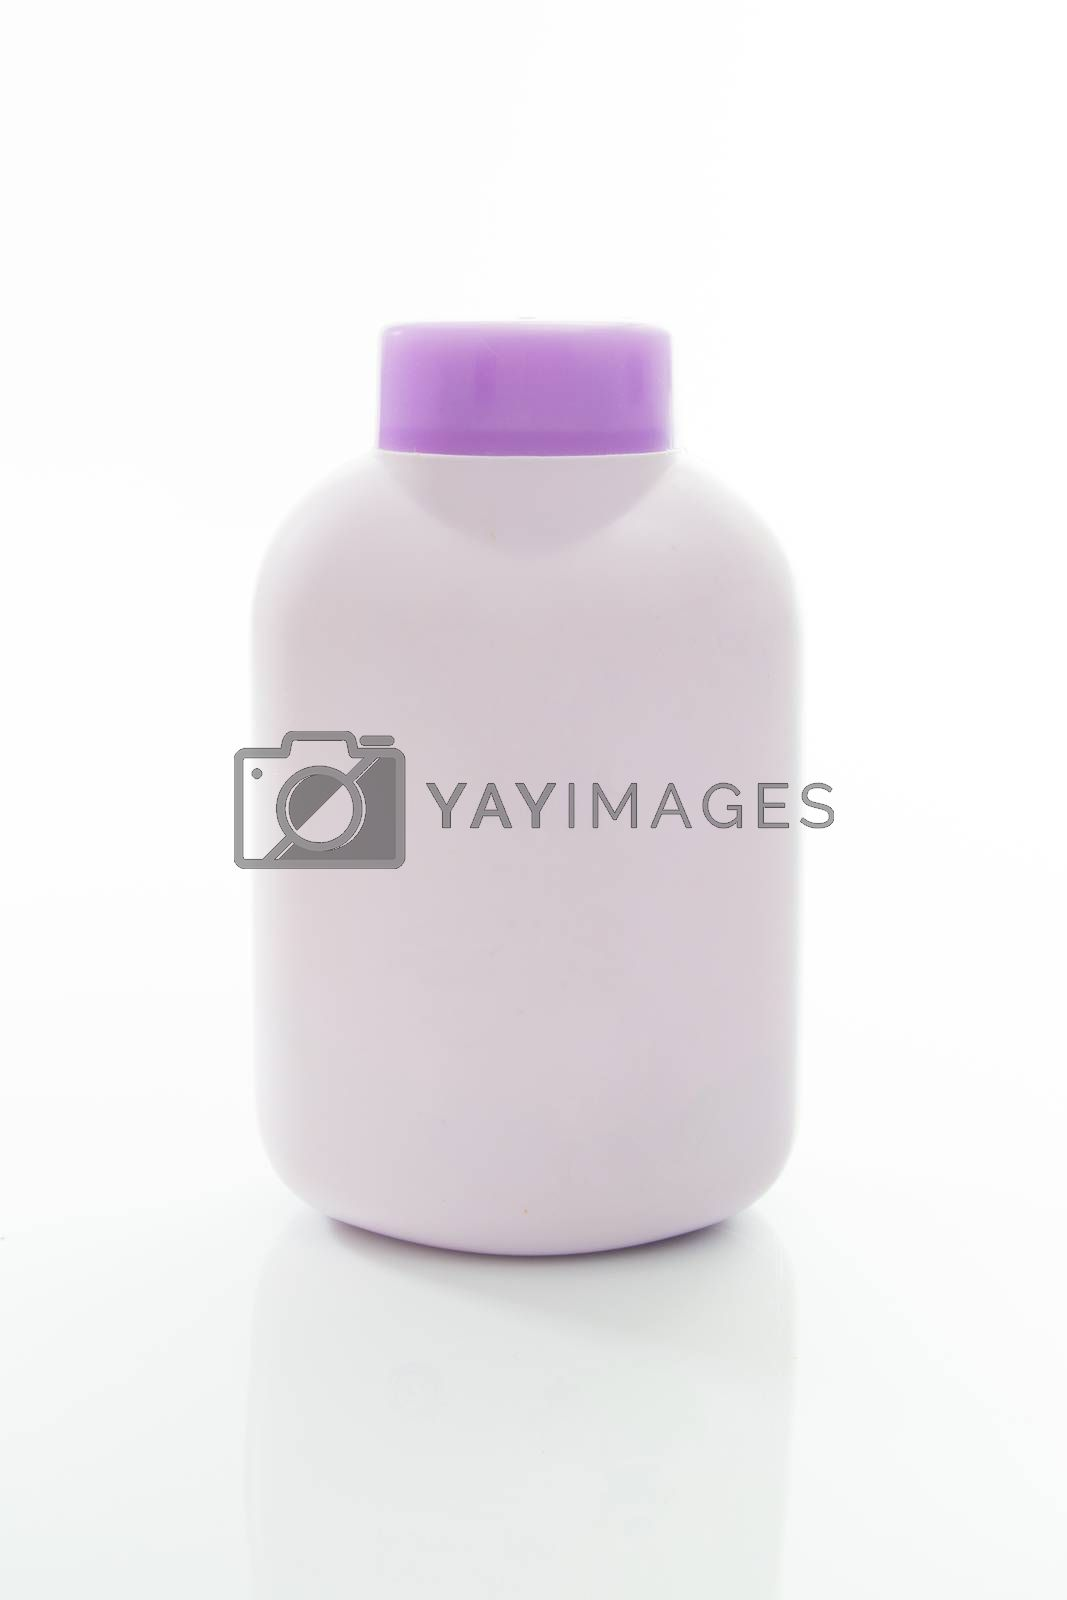 Royalty free image of Cosmetic bottle by theerapoll